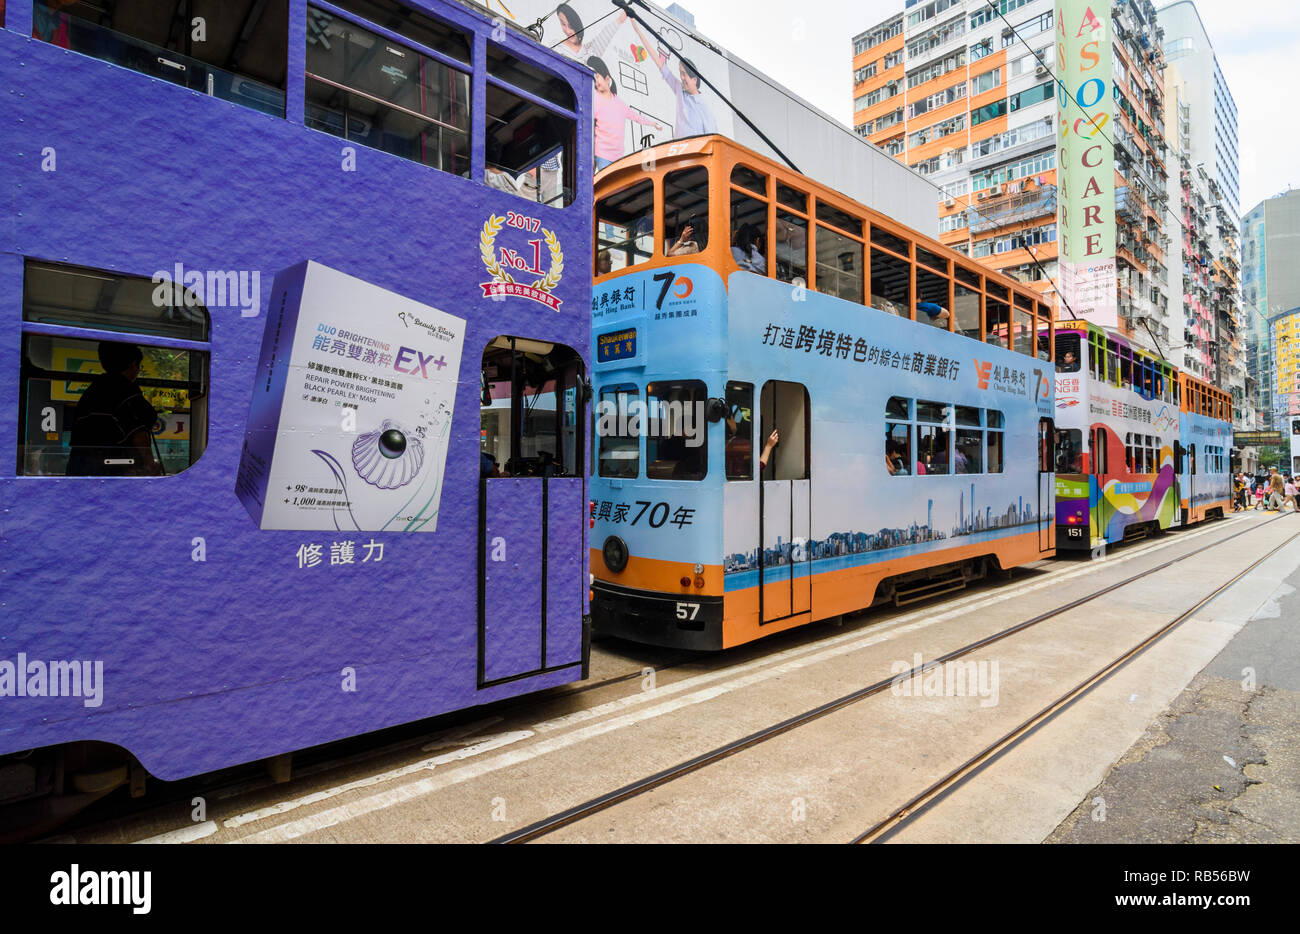 Trams on Johnston Rd, Wan Chai, Hong Kong Stock Photo